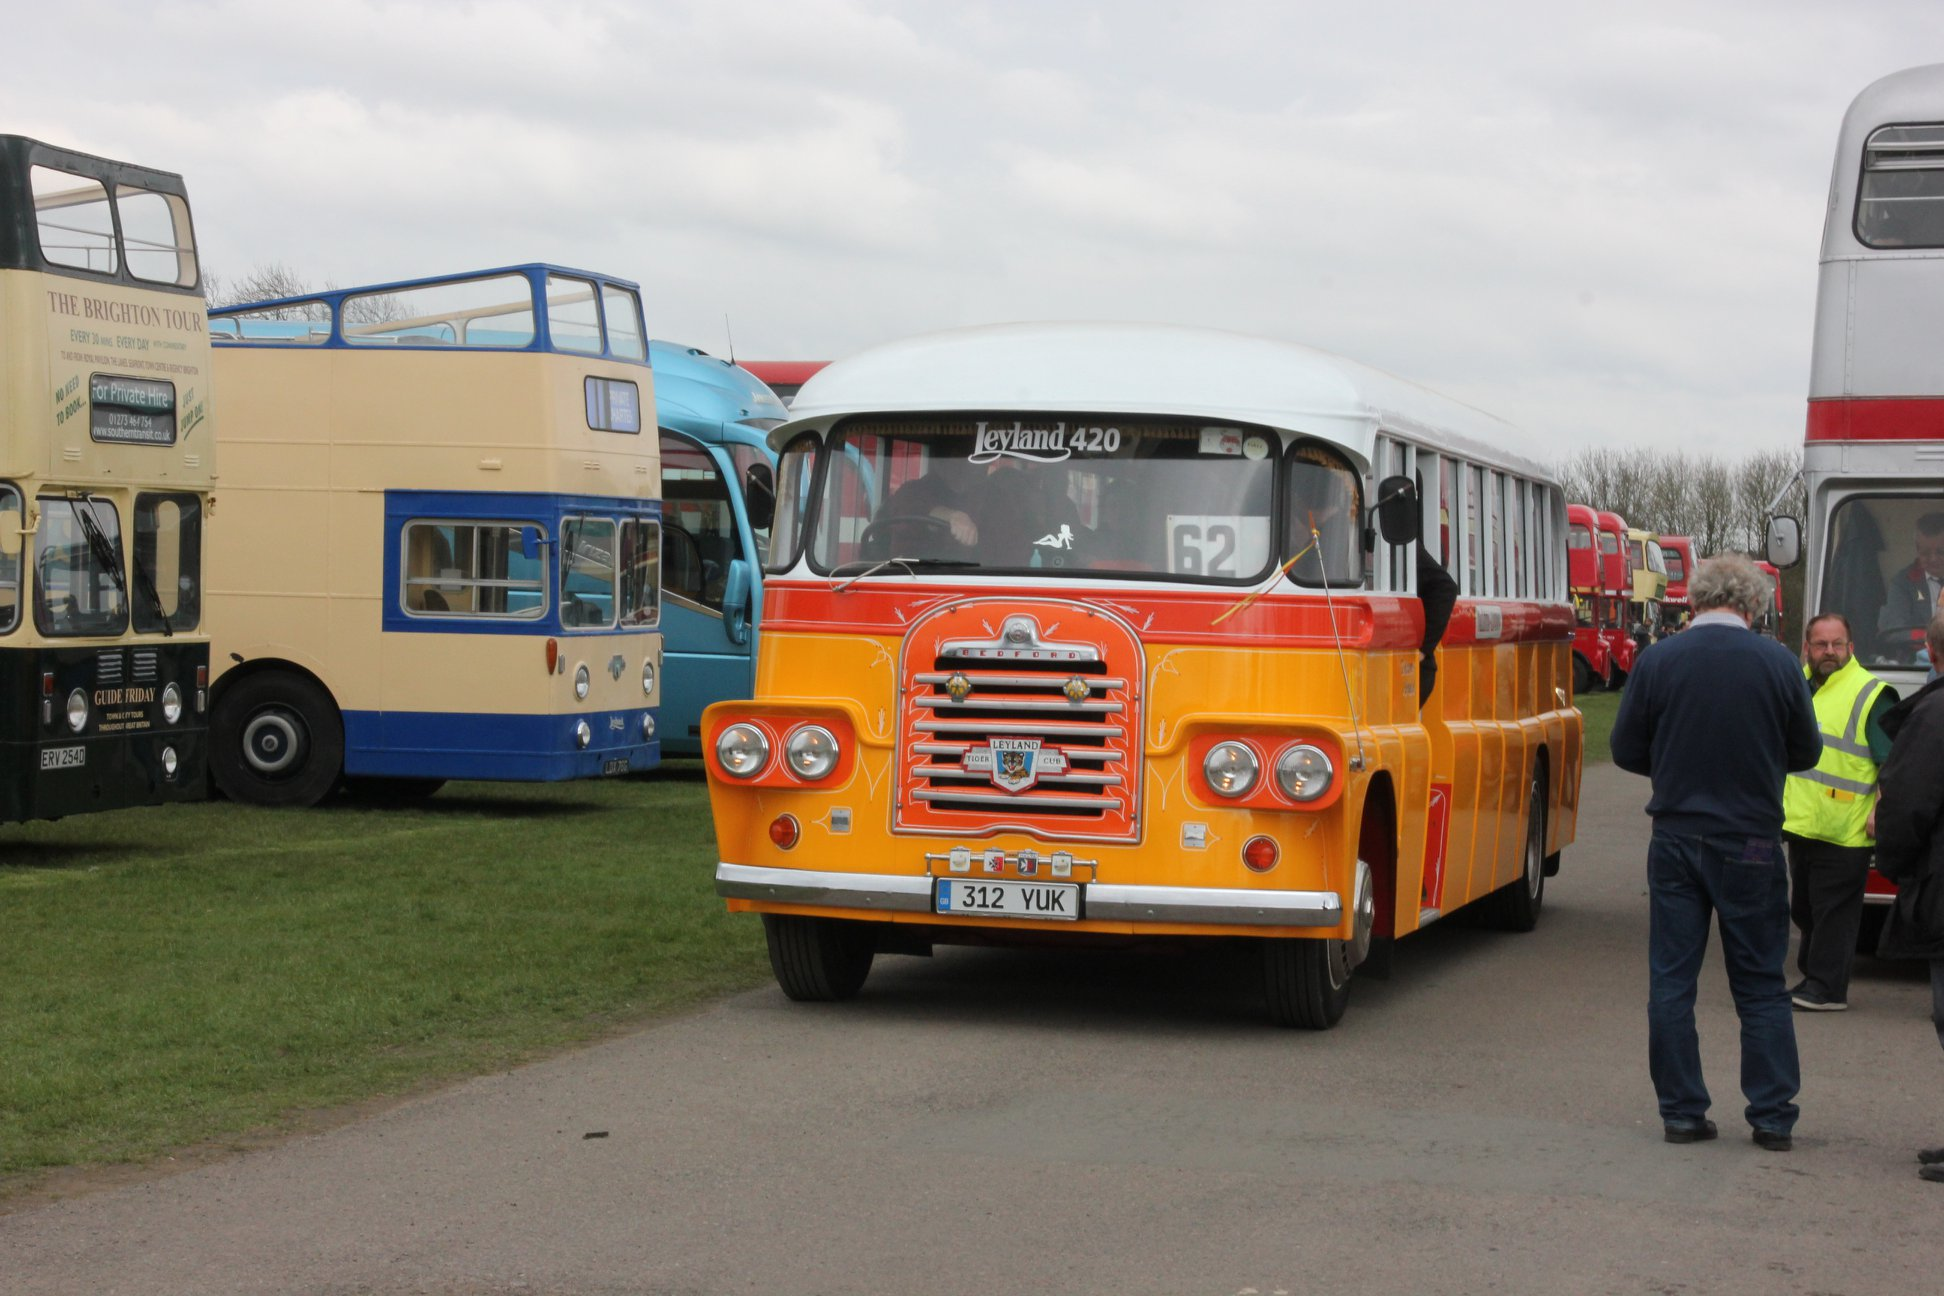 8-4-2018-South-East-Bus-Festival-2